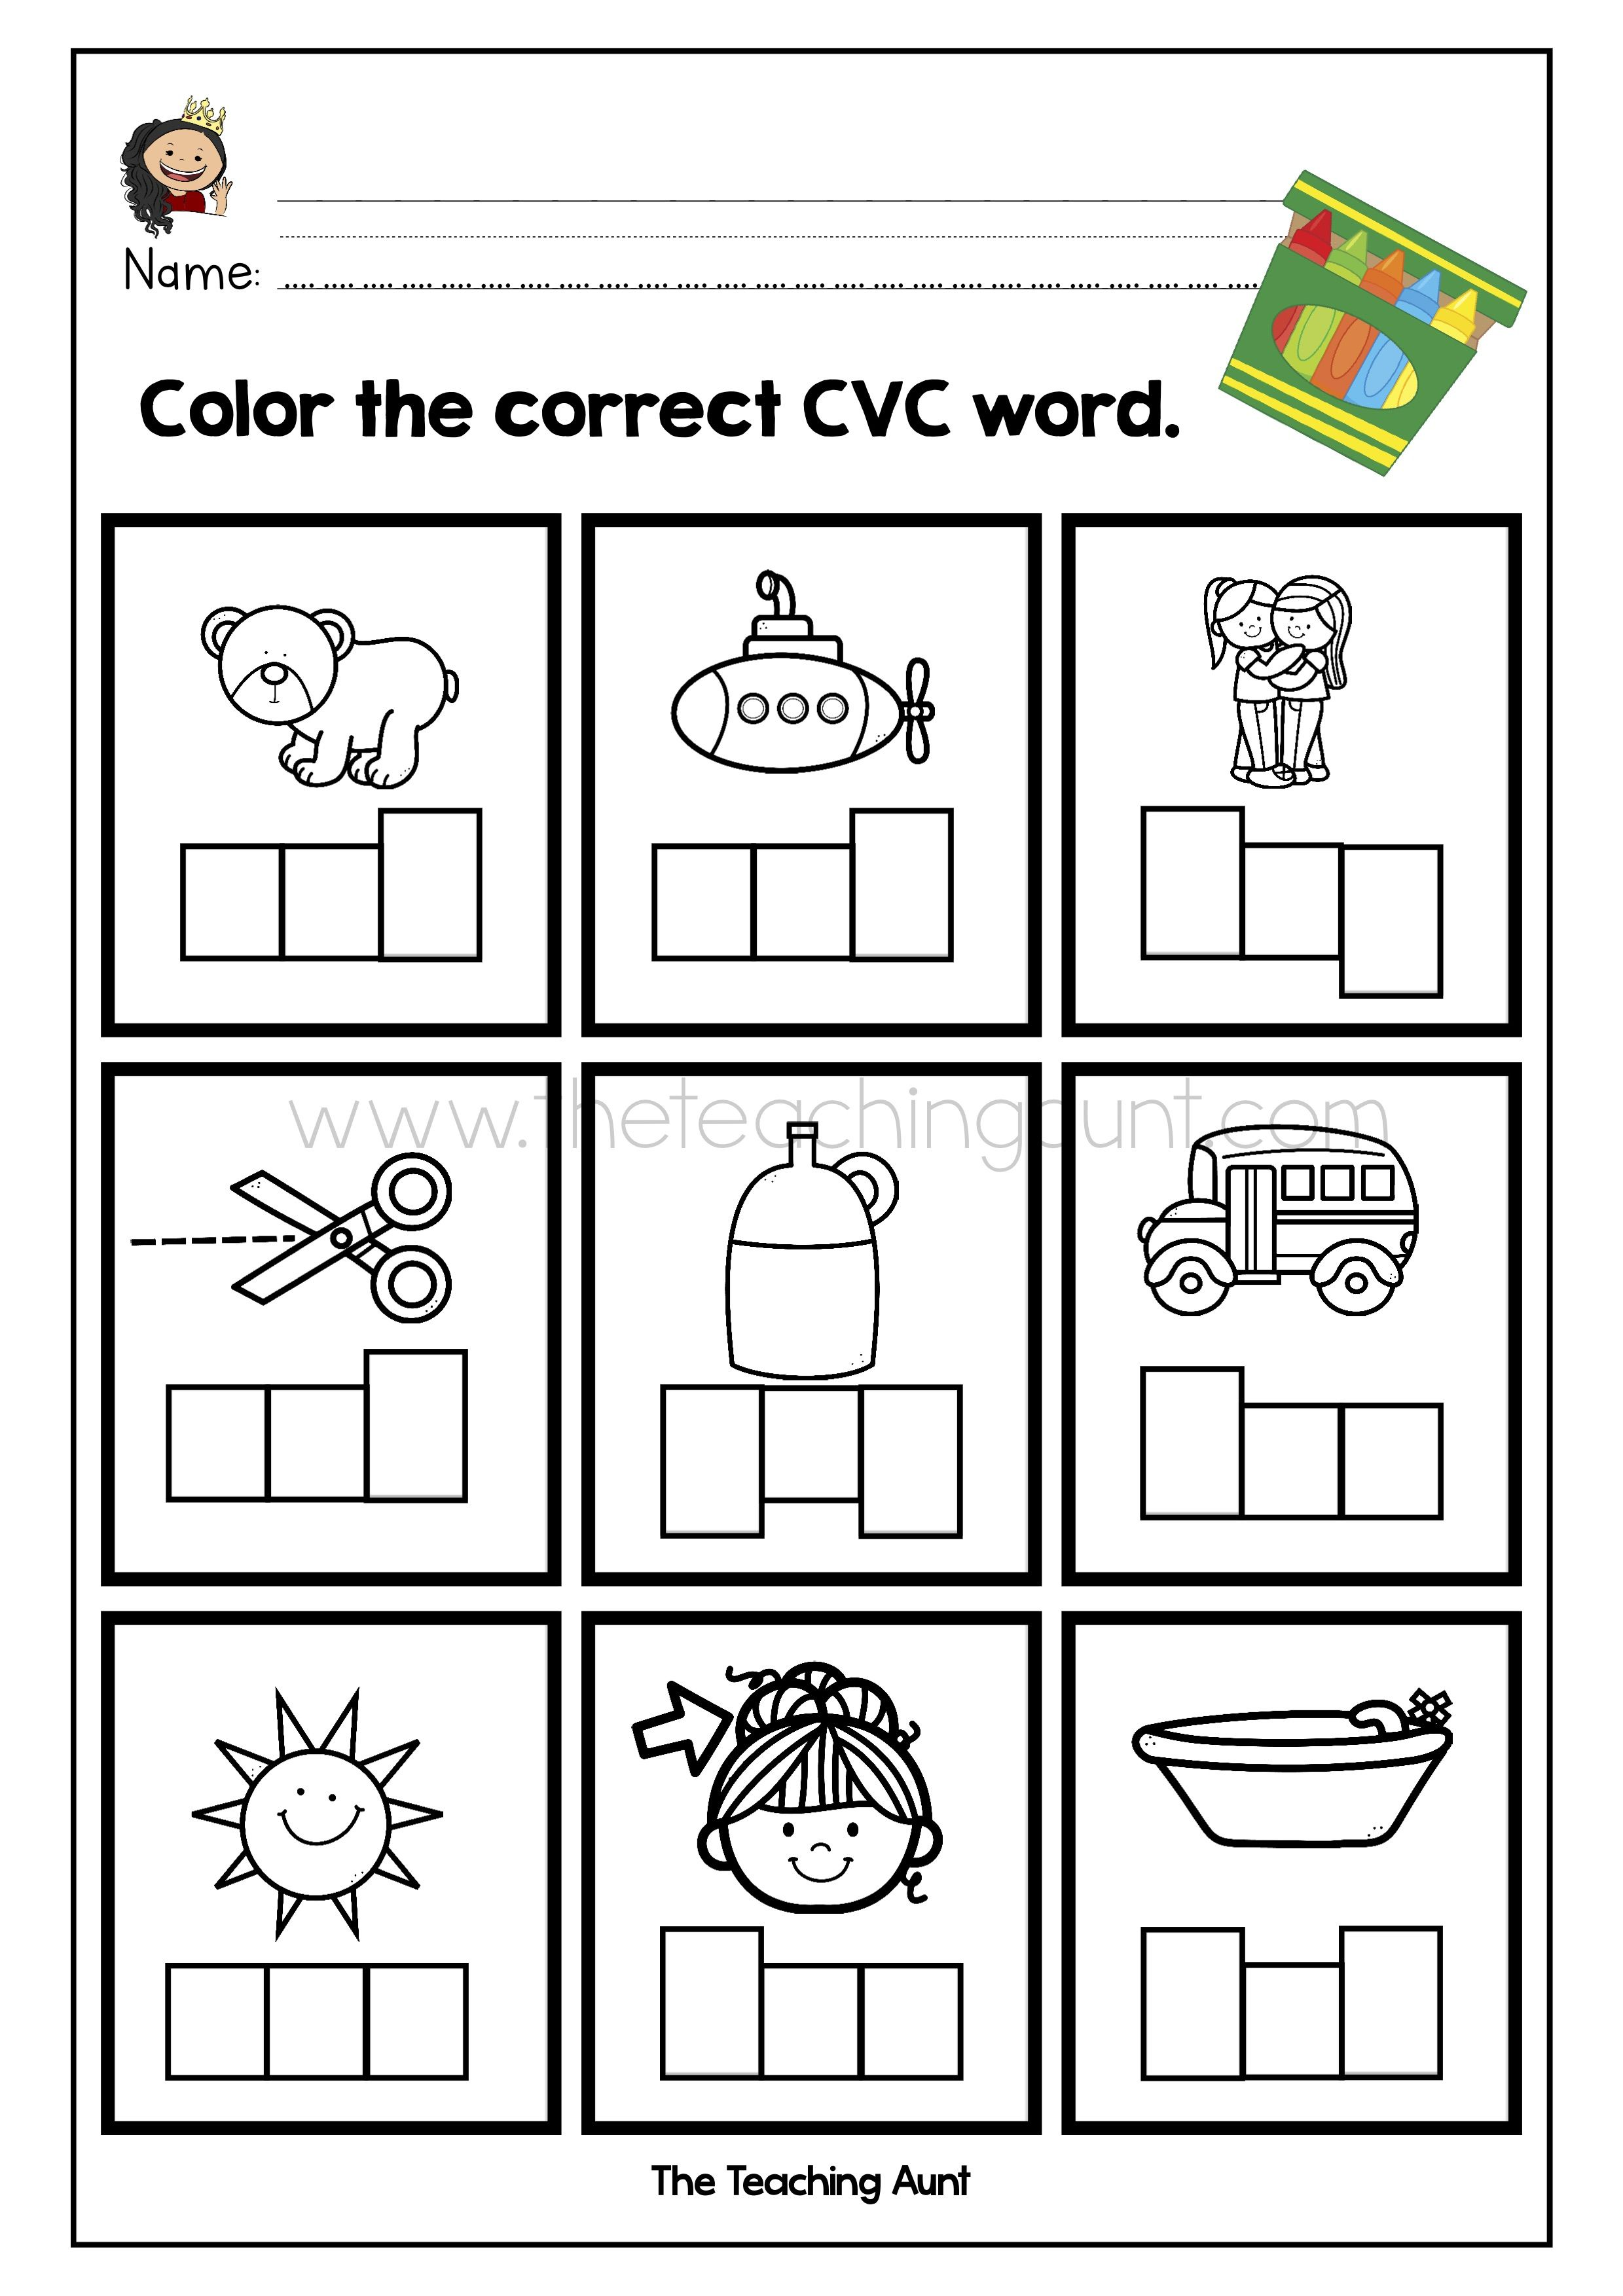 Cvc Words Worksheets For Kindergarten The Teaching Aunt Cvc Words Worksheets Cvc Words Kindergarten Worksheets